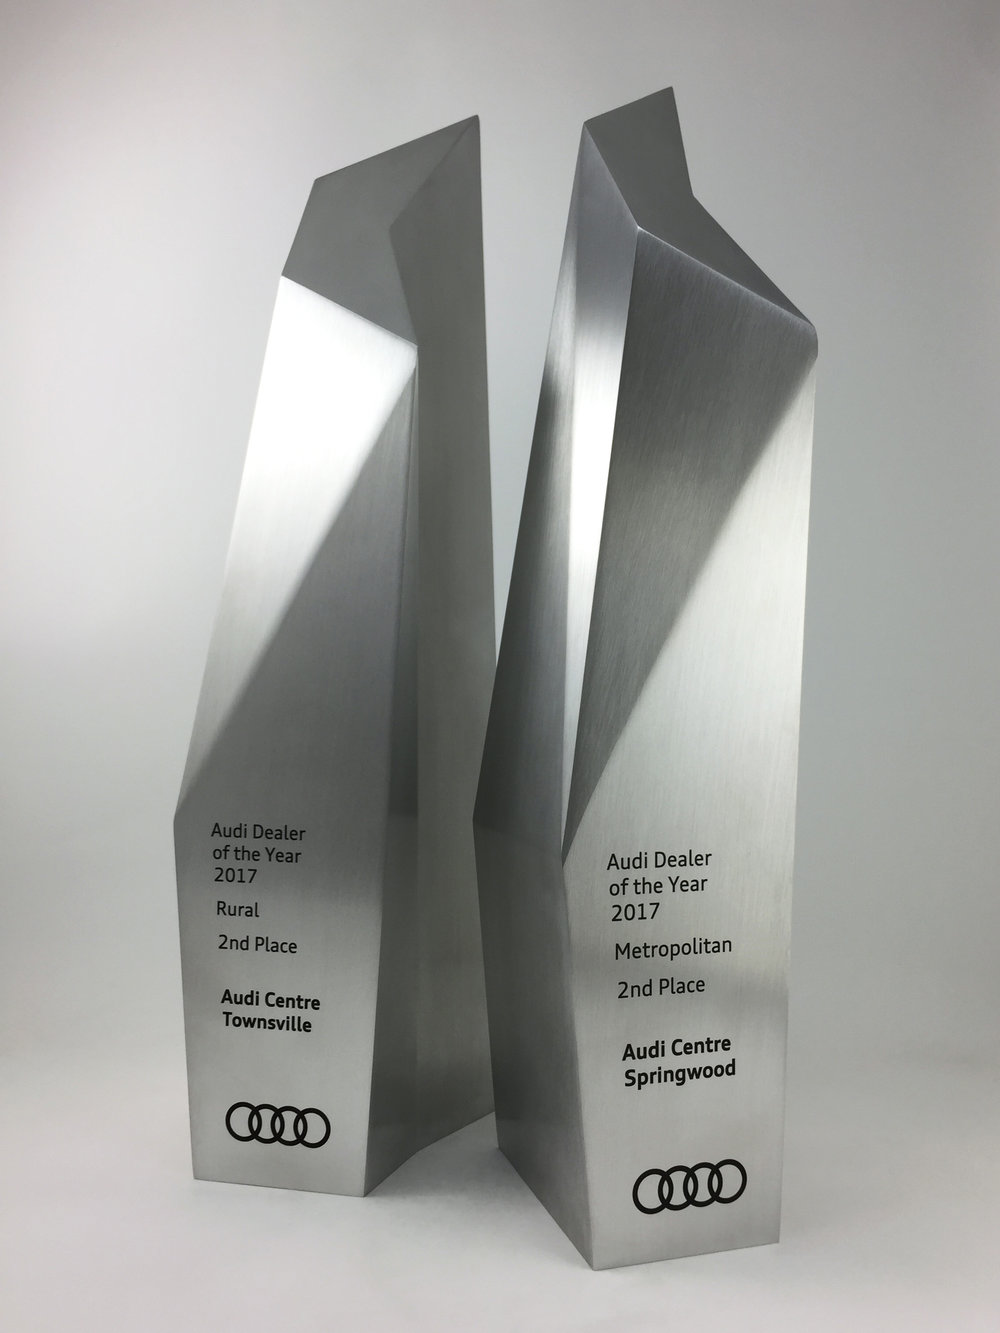 audi-metal-art-sculpture-award-trophy-05.jpg